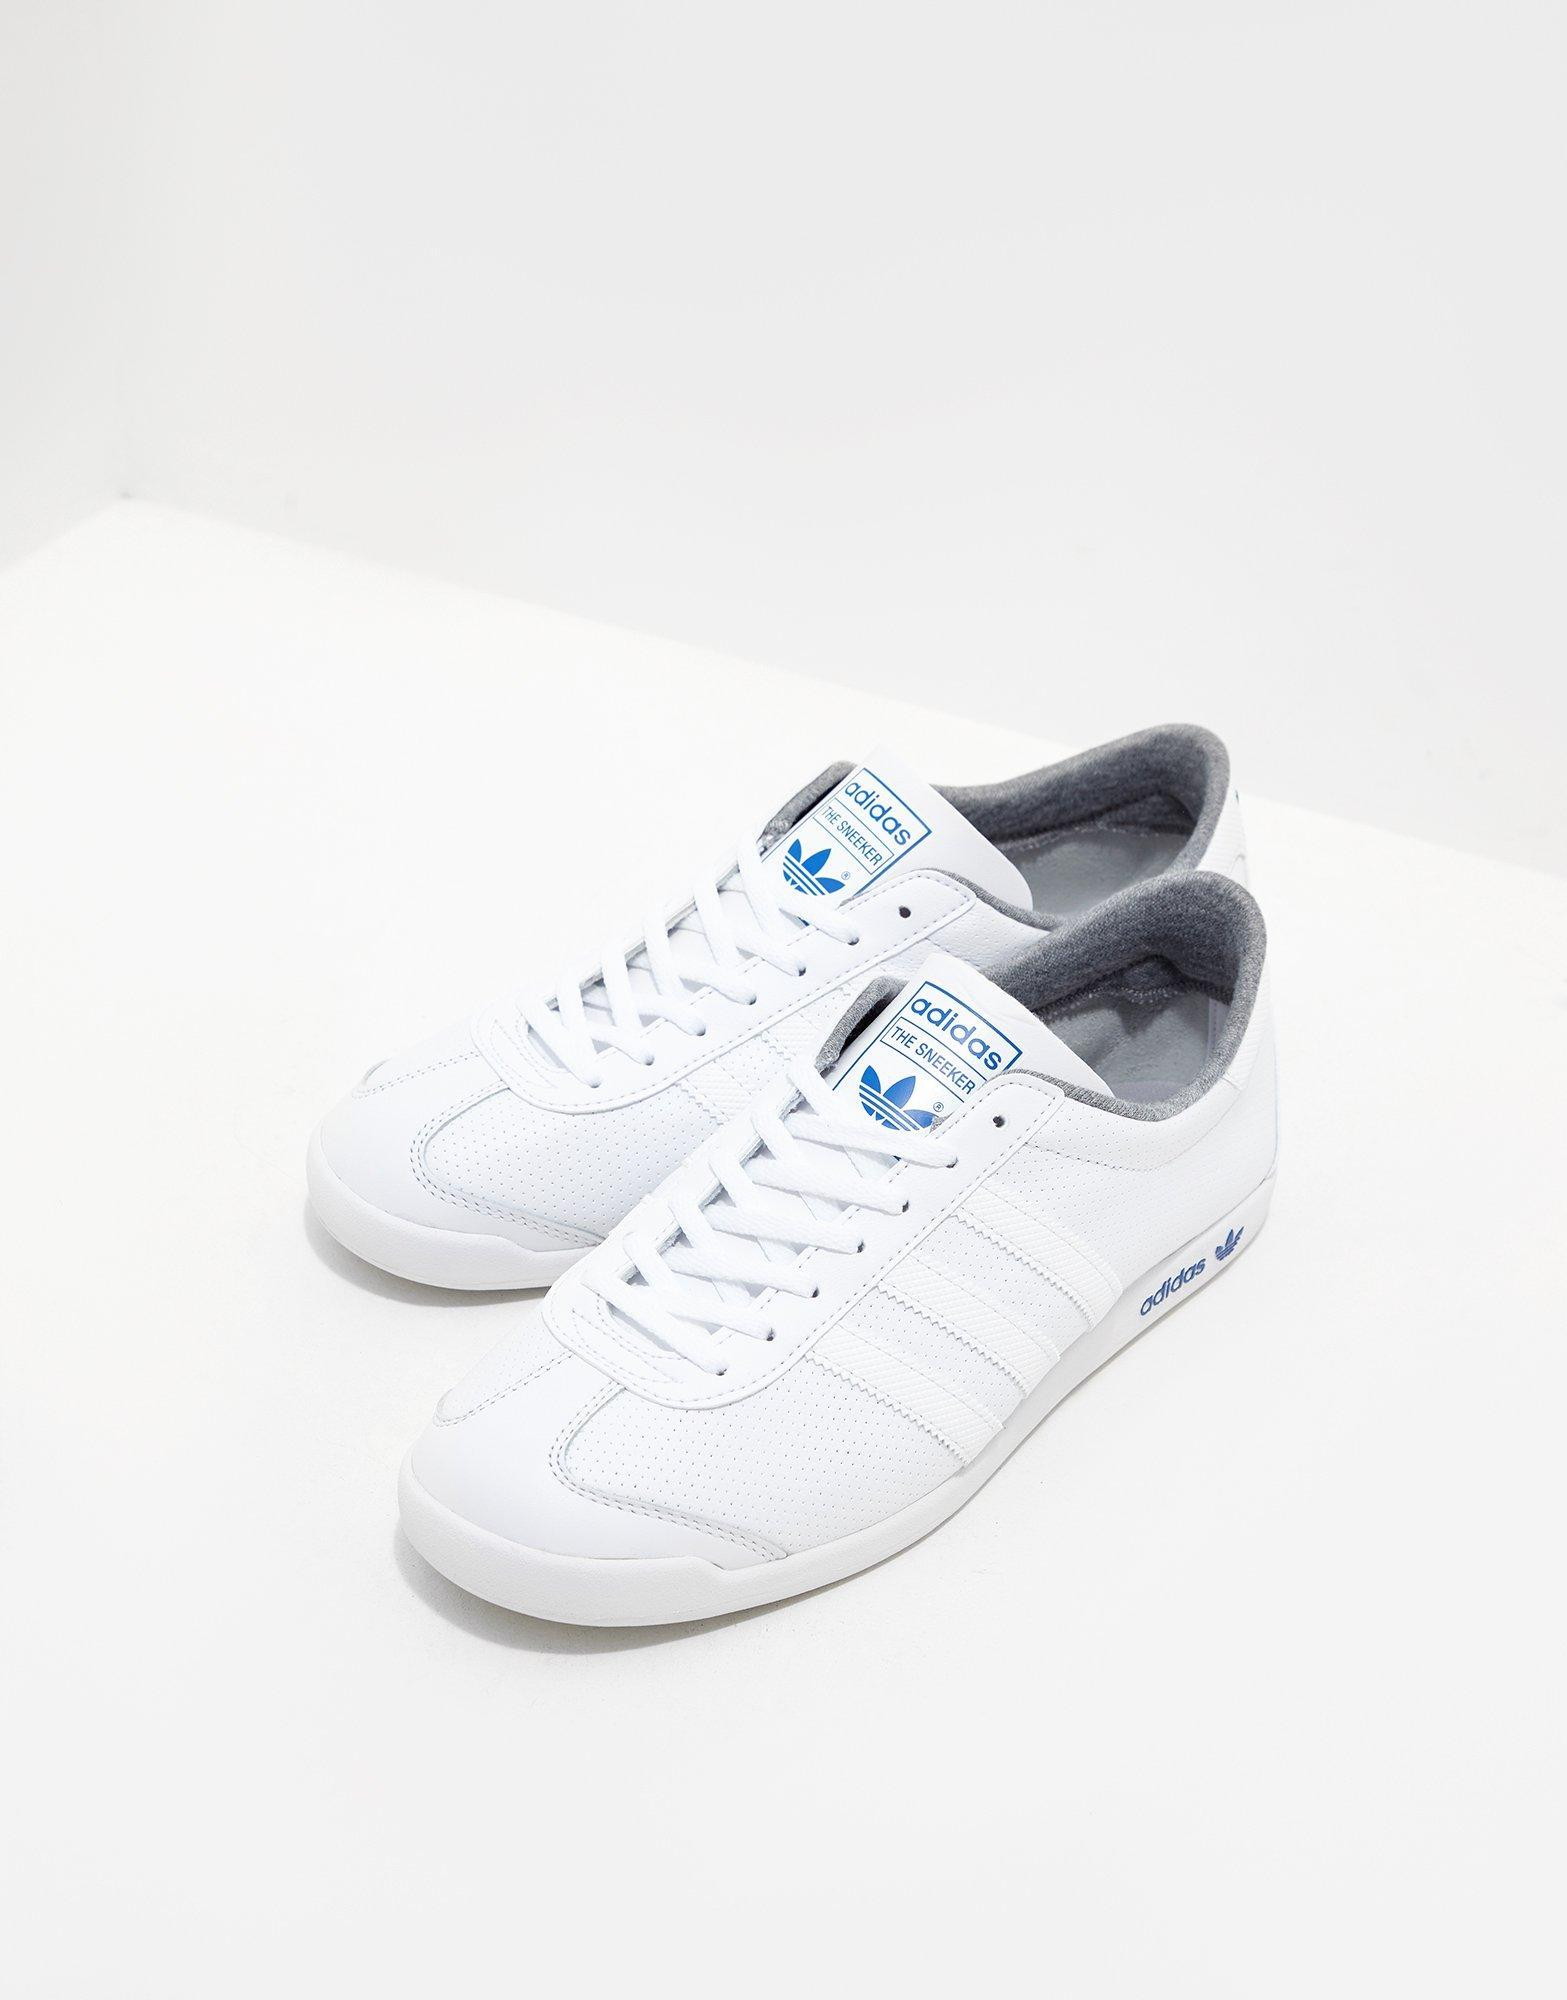 76a8bb1b0f4bc Lyst - adidas Originals The Sneeker White in White for Men